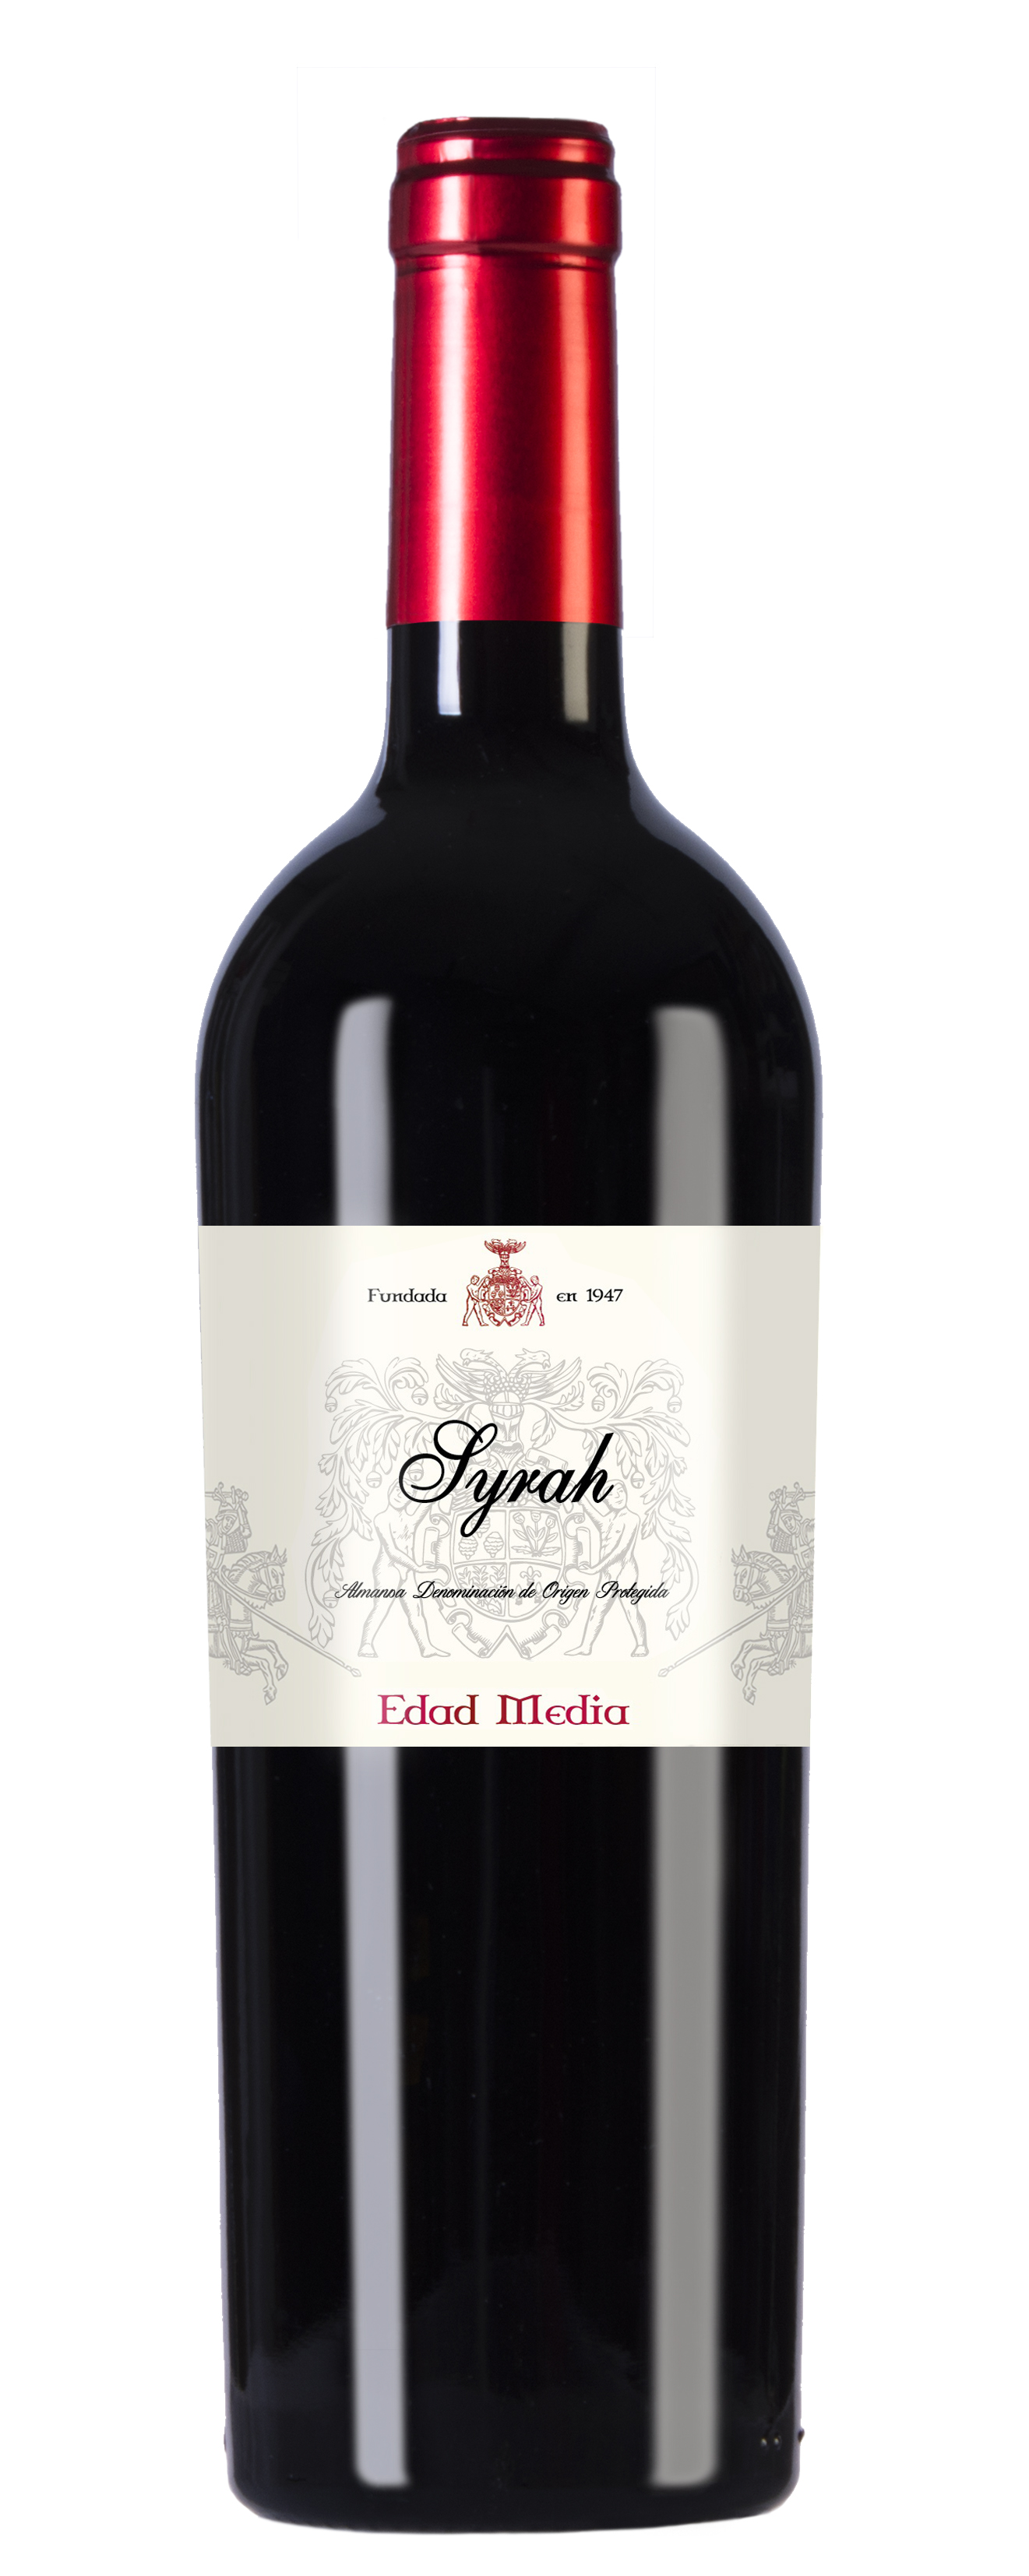 EDAD MEDIA RED OAKED SYRAH · Syrah